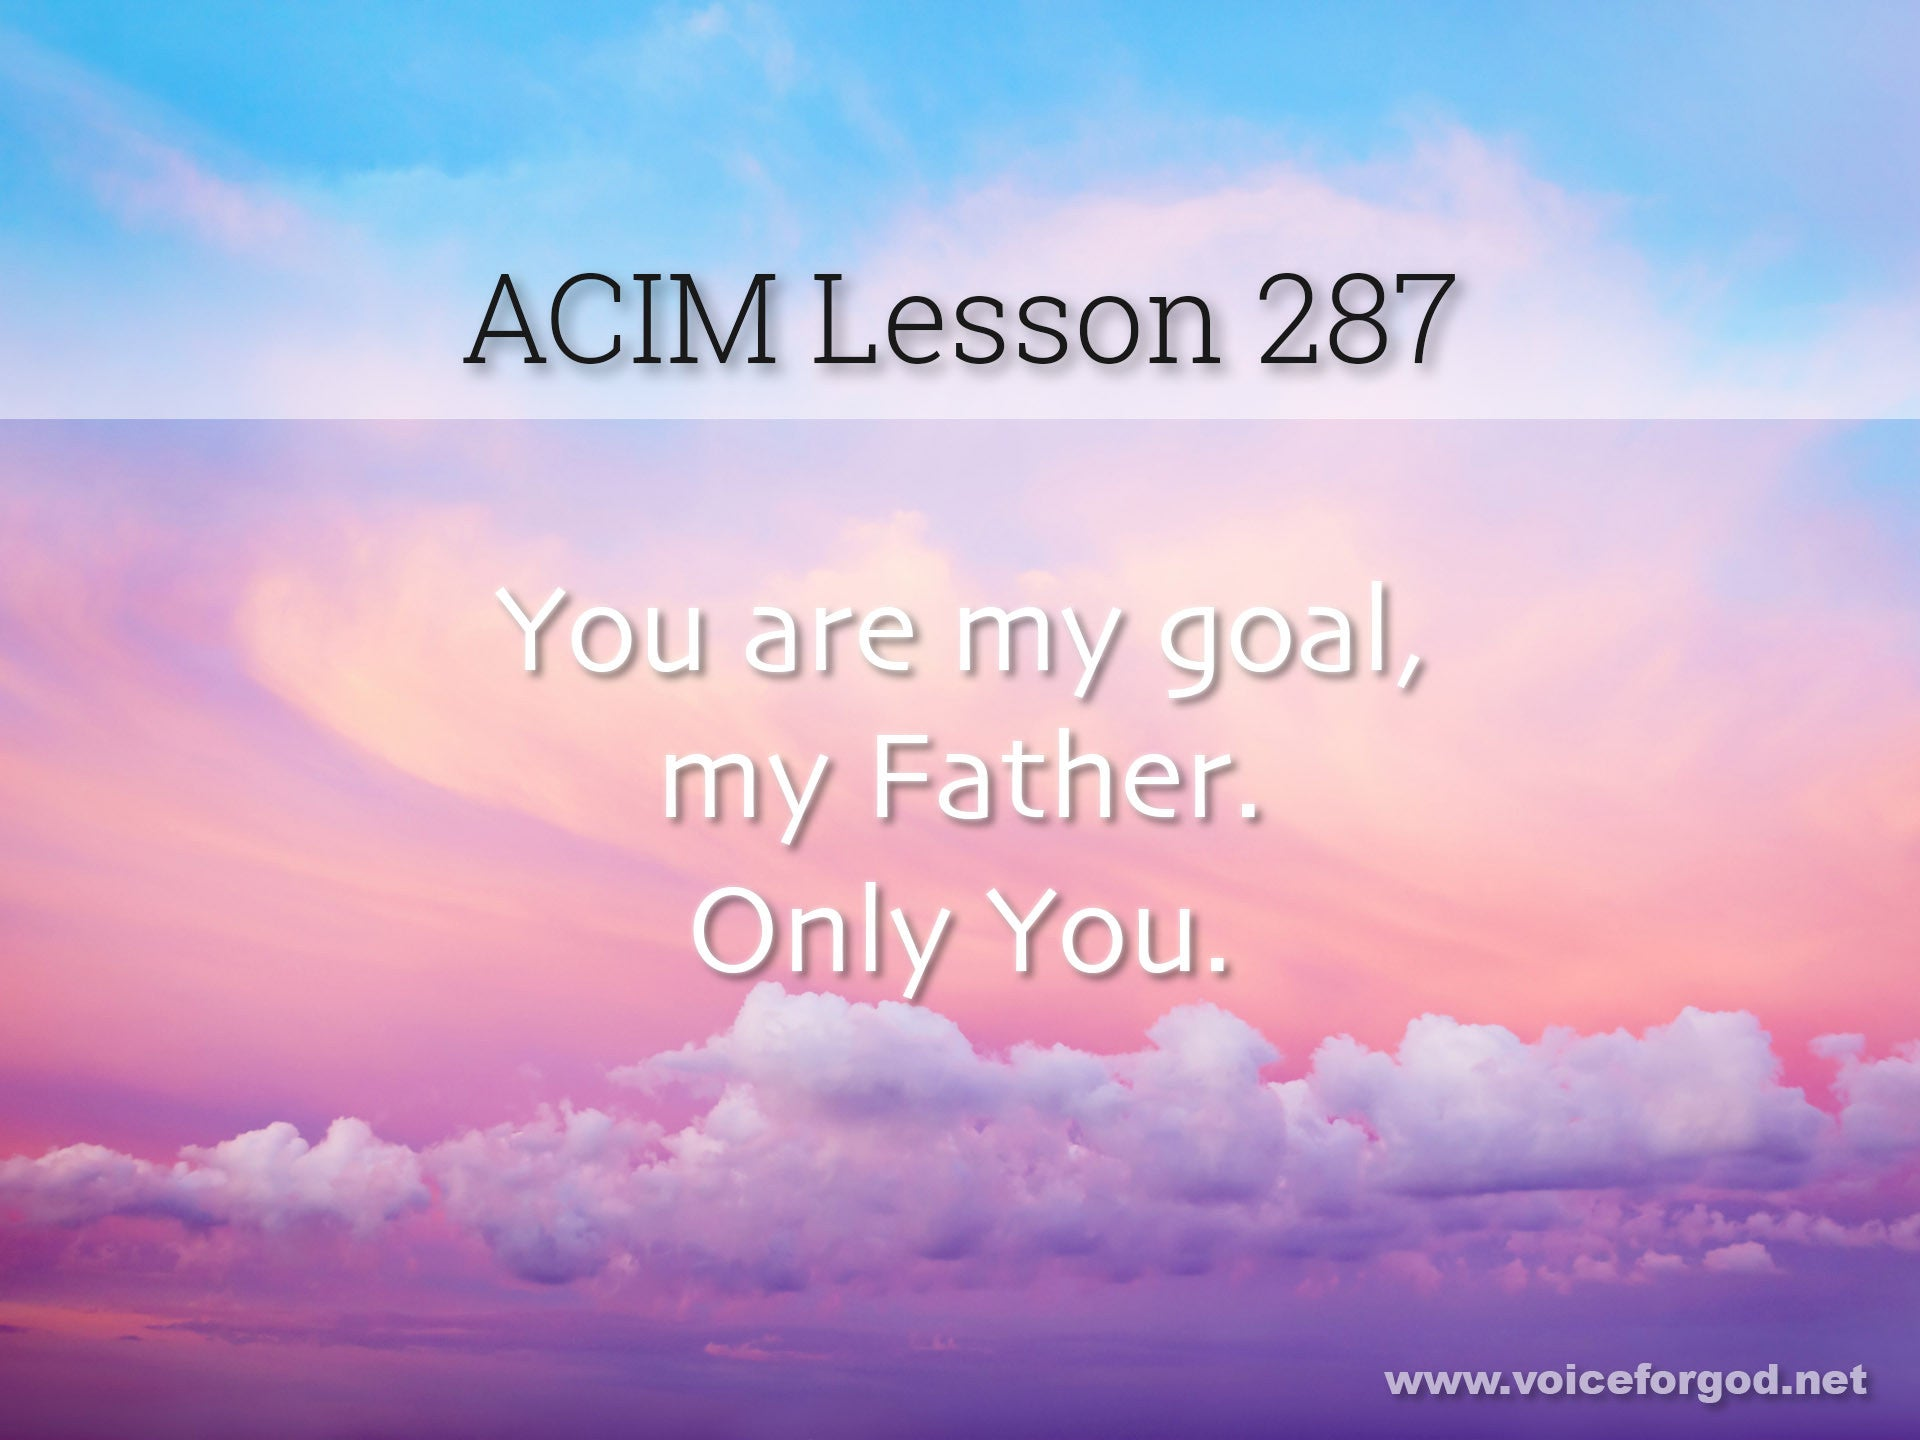 ACIM Lesson 287 - A Course in Miracles Workbook Lesson 287